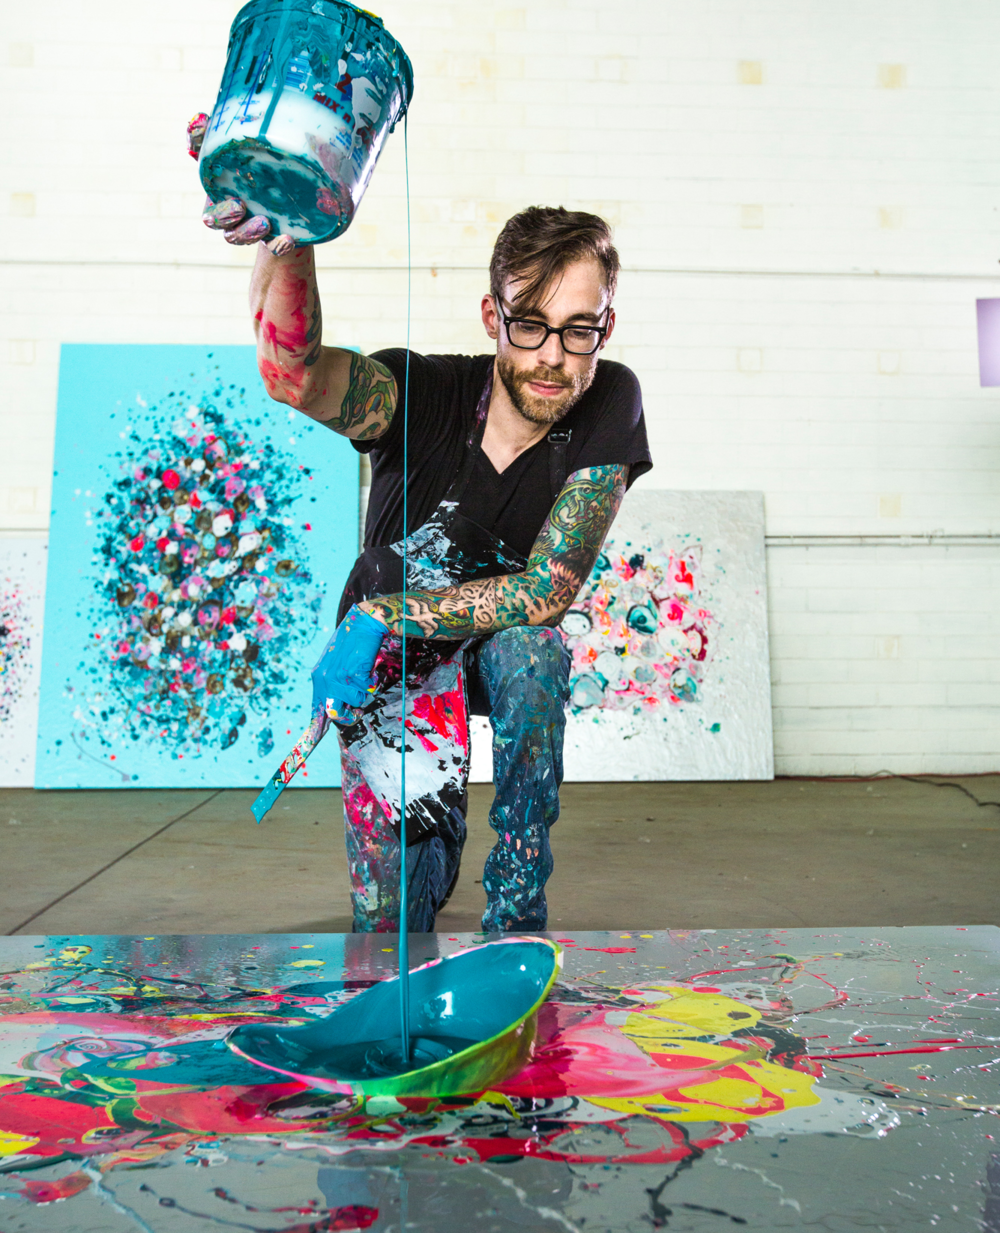 Action shot at 7000 sqft space for CHROMA show (photo credit: Katherine Kirchner Photography)